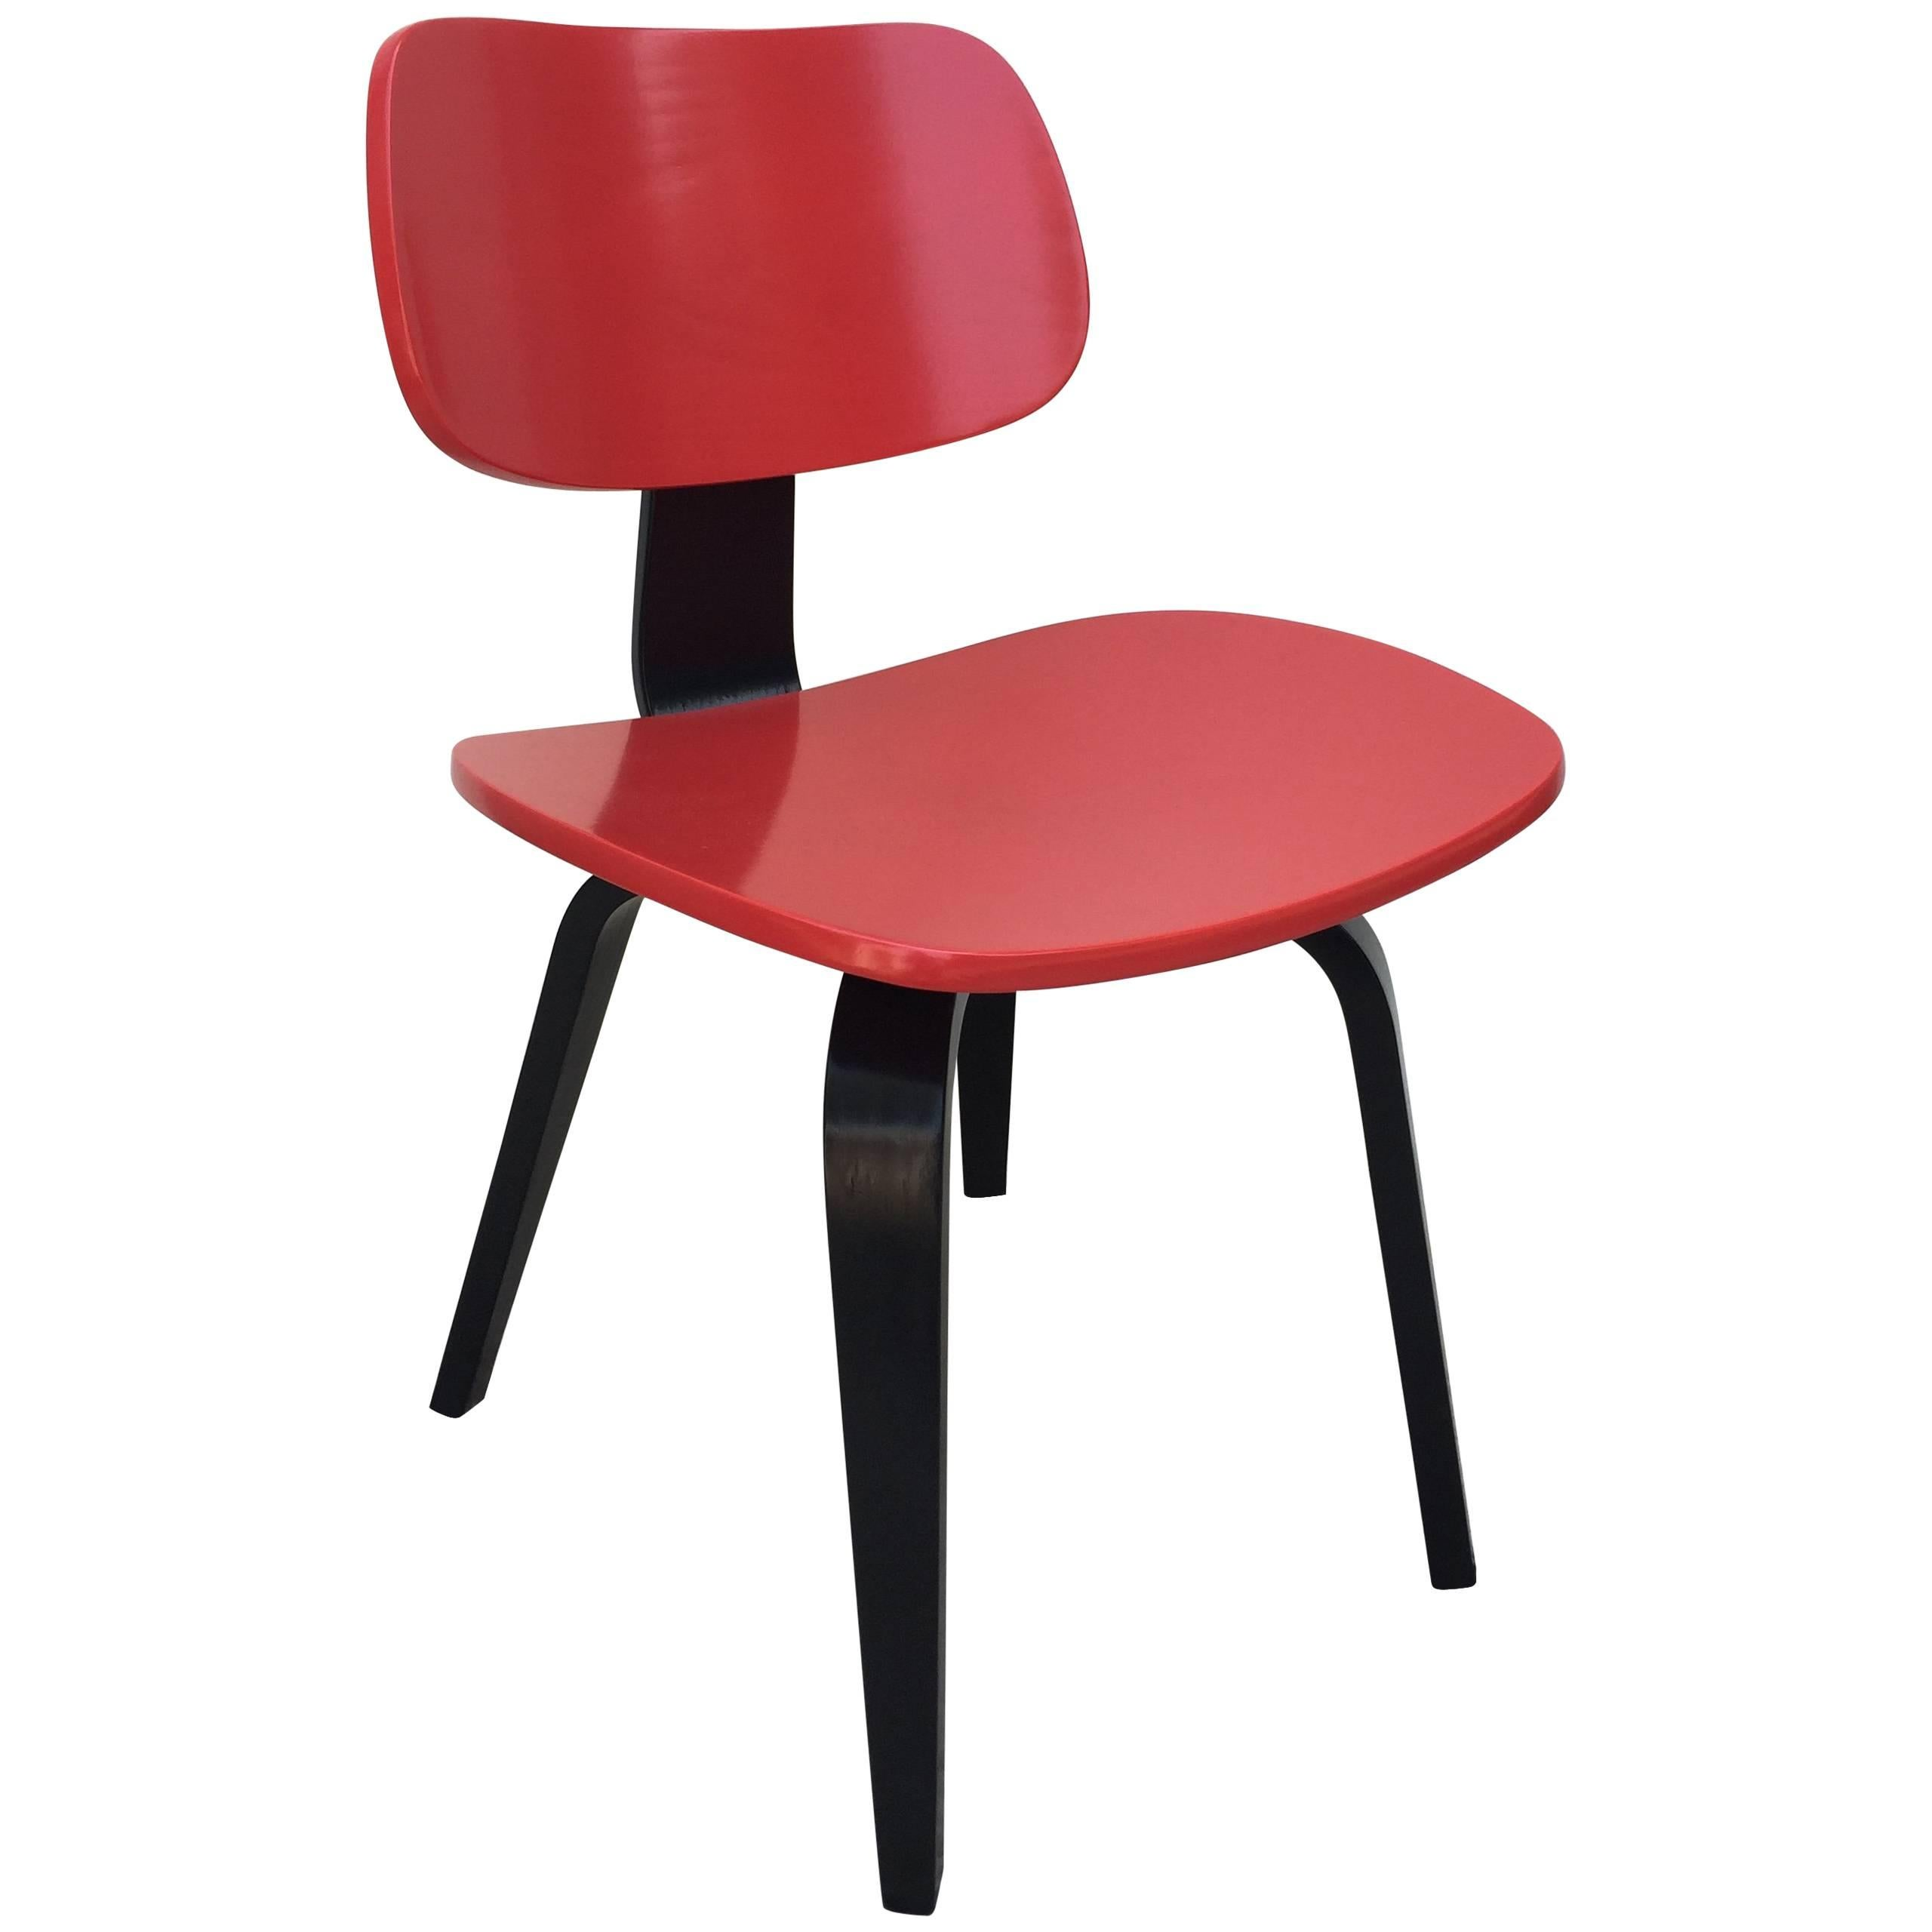 Thonet Bentwood Red and Black Lacquered Modernist Desk Chair